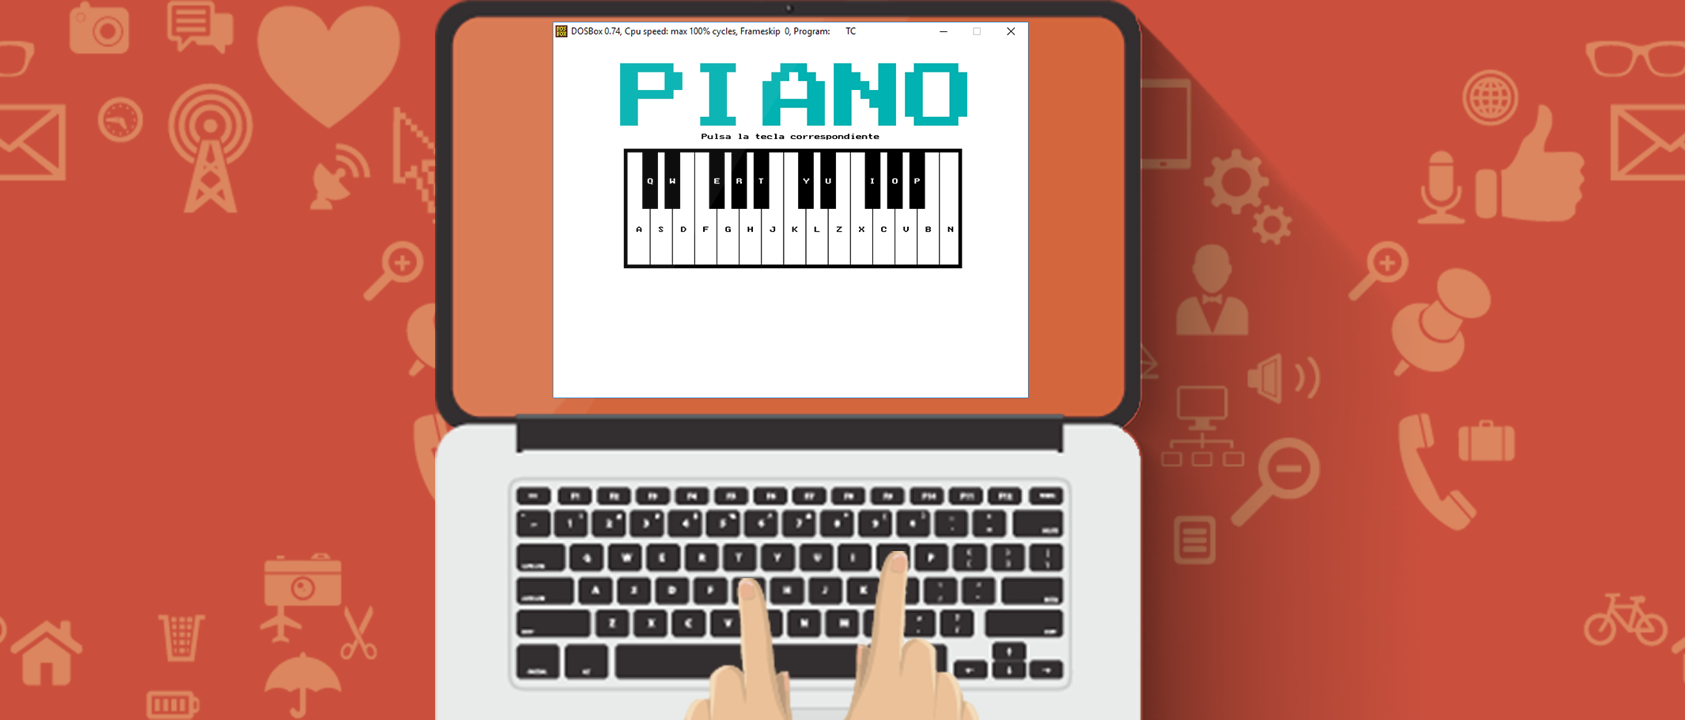 GitHub - obenm/Piano: Piano is a graphic C++ application to simulate